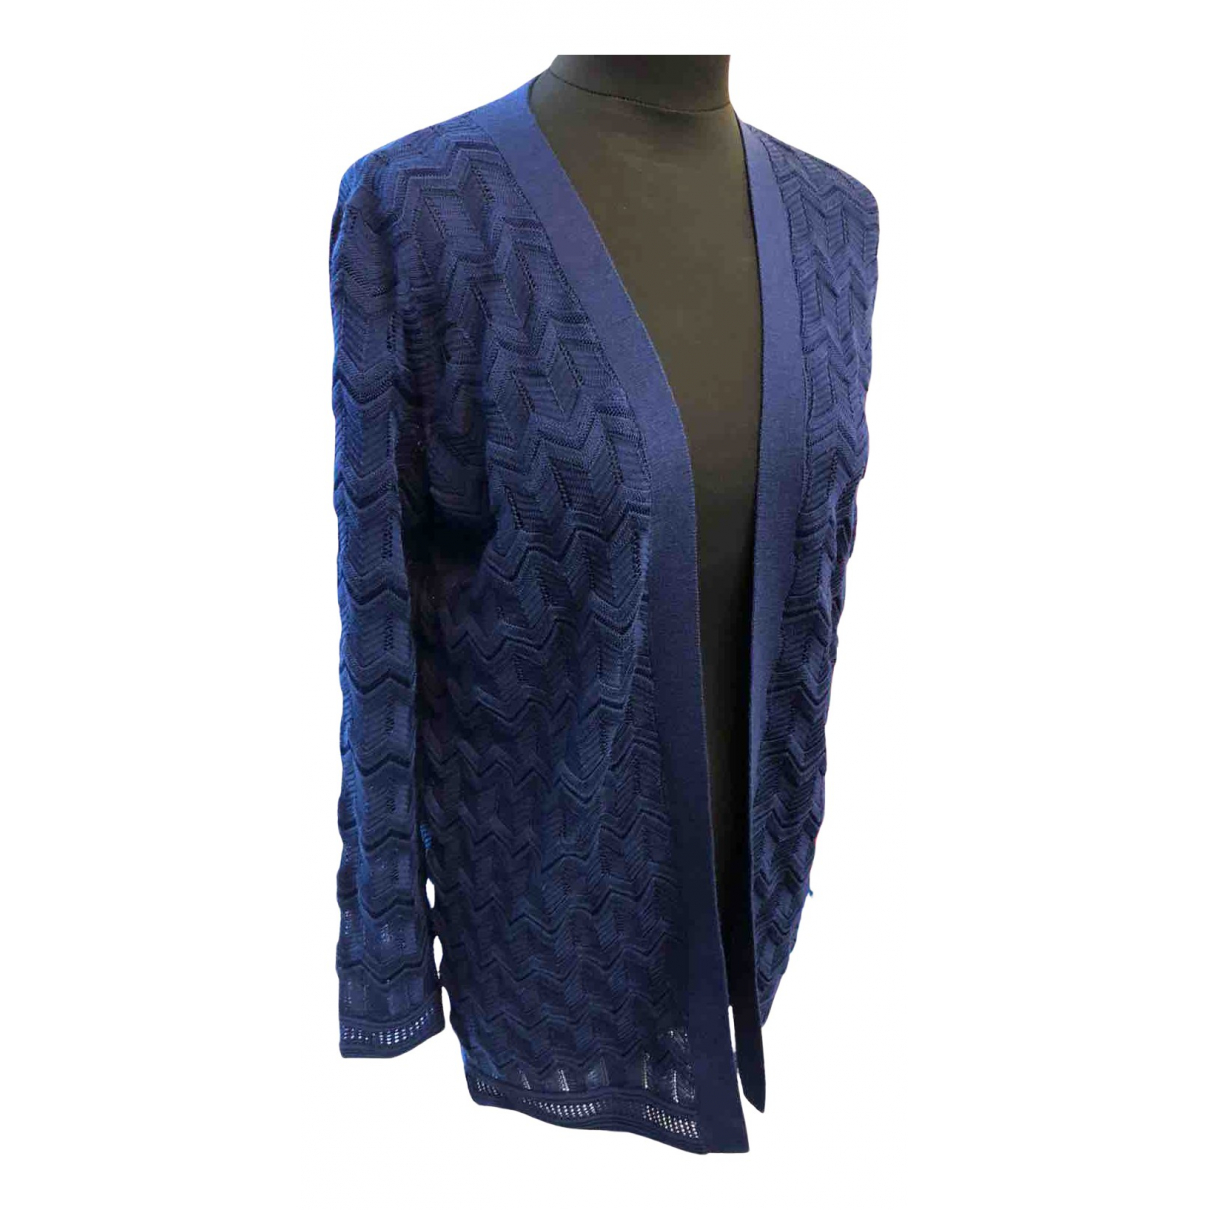 M Missoni N Blue Knitwear for Women 40 IT